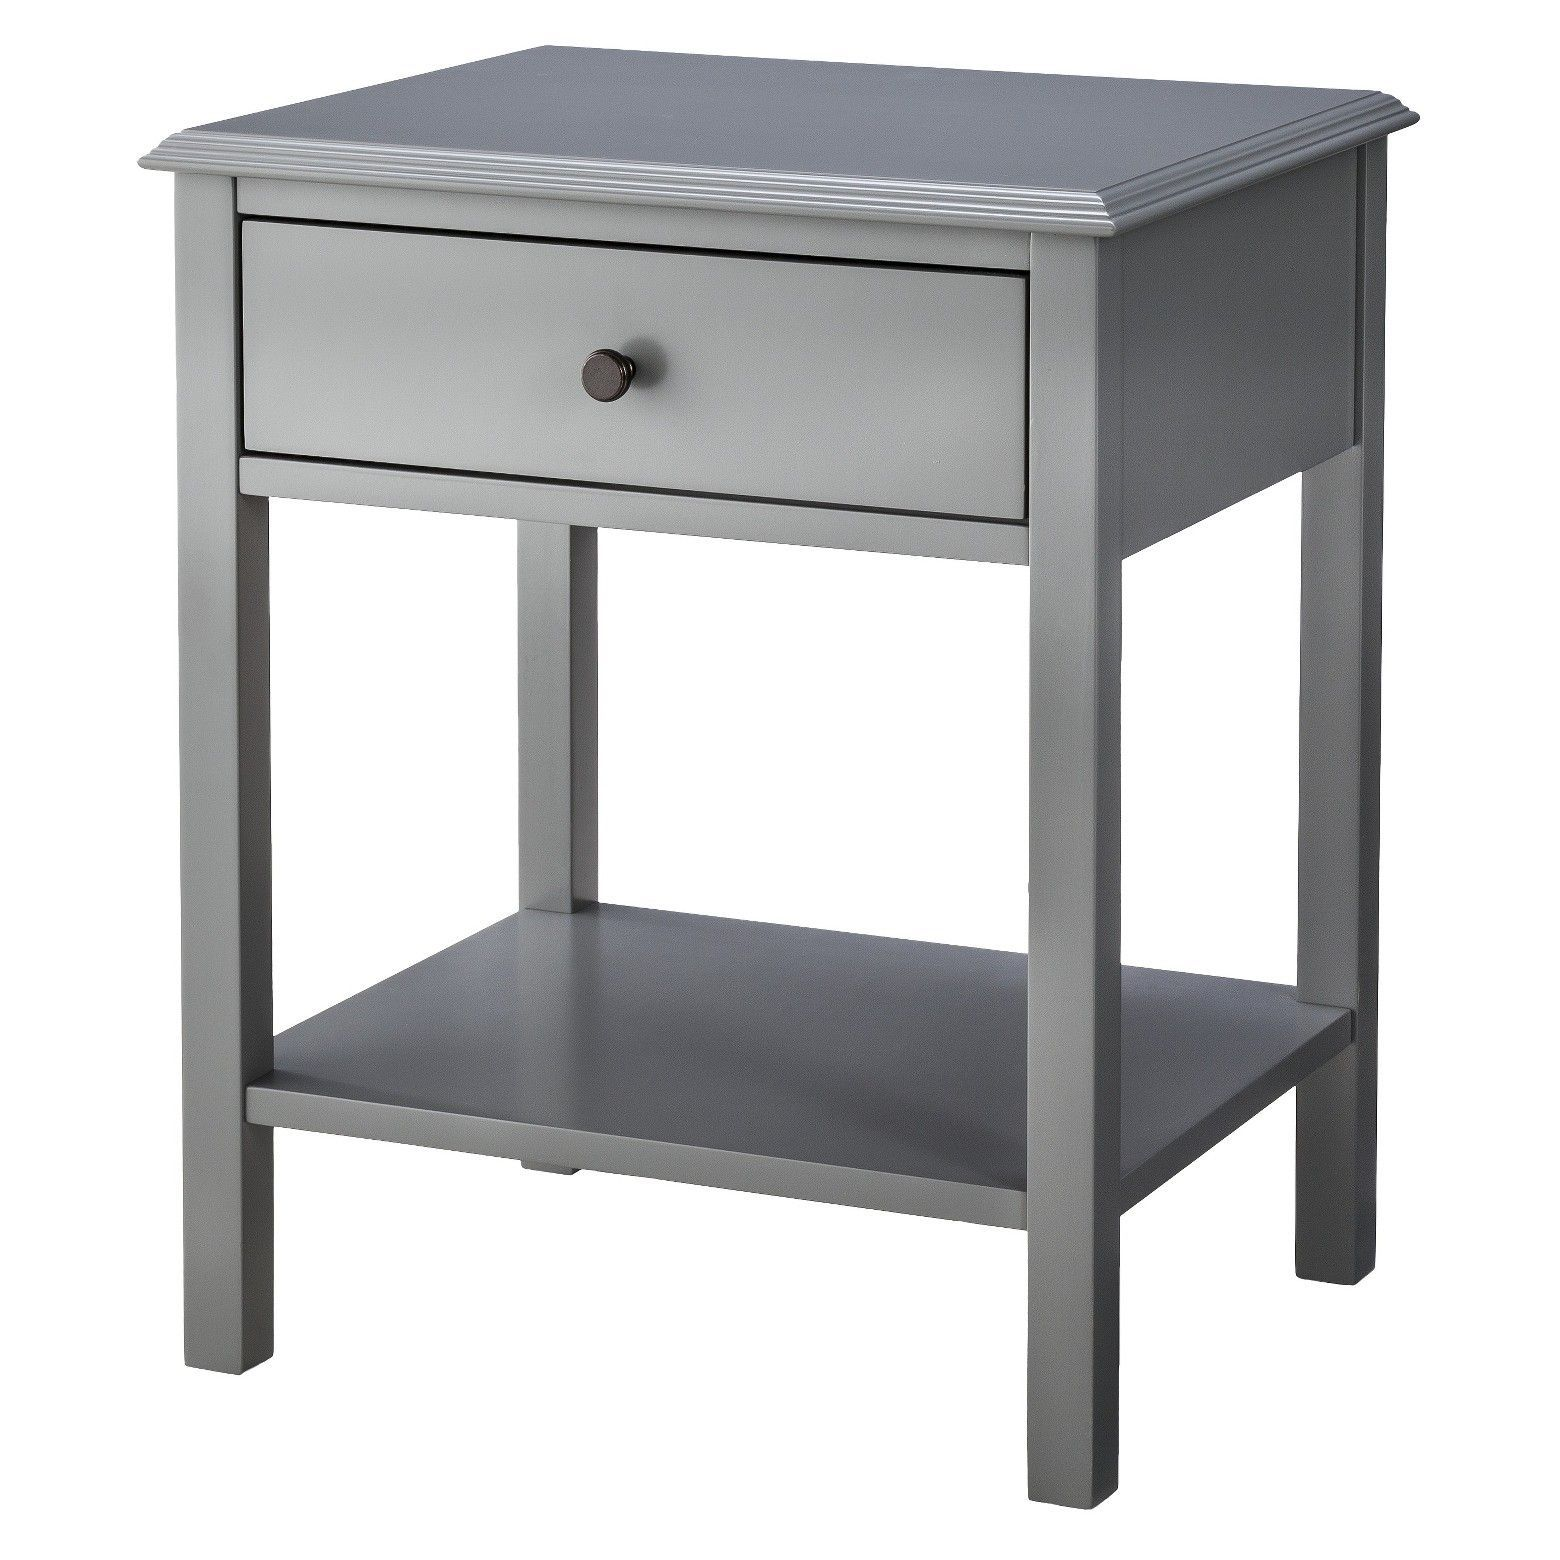 threshold windham side table drawers organizing and shelves accent the combines great design simple beauty for finishing touch gallerie curtains trunk living room floor lamps